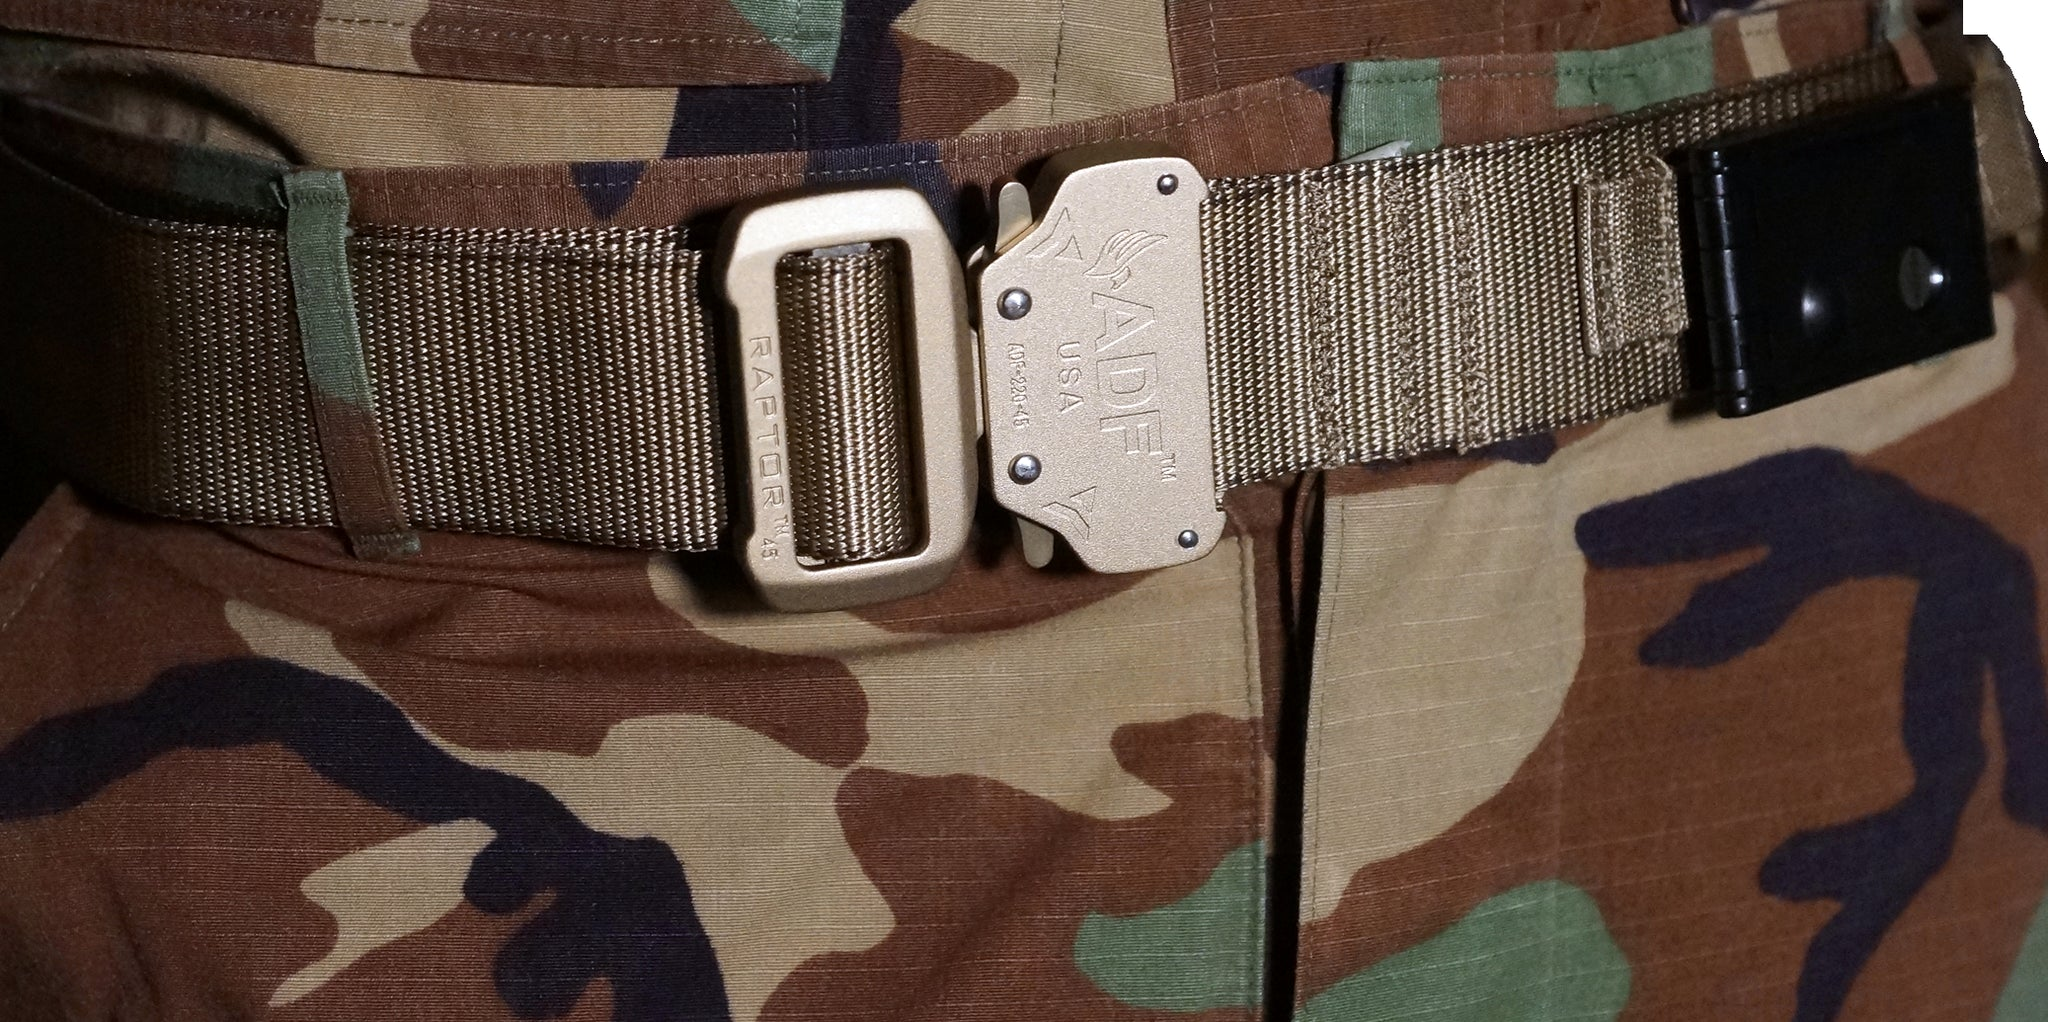 Tan/Coyote DBF Belt: Zoomed-in view of belt showing the TLD securely fitted to belt.